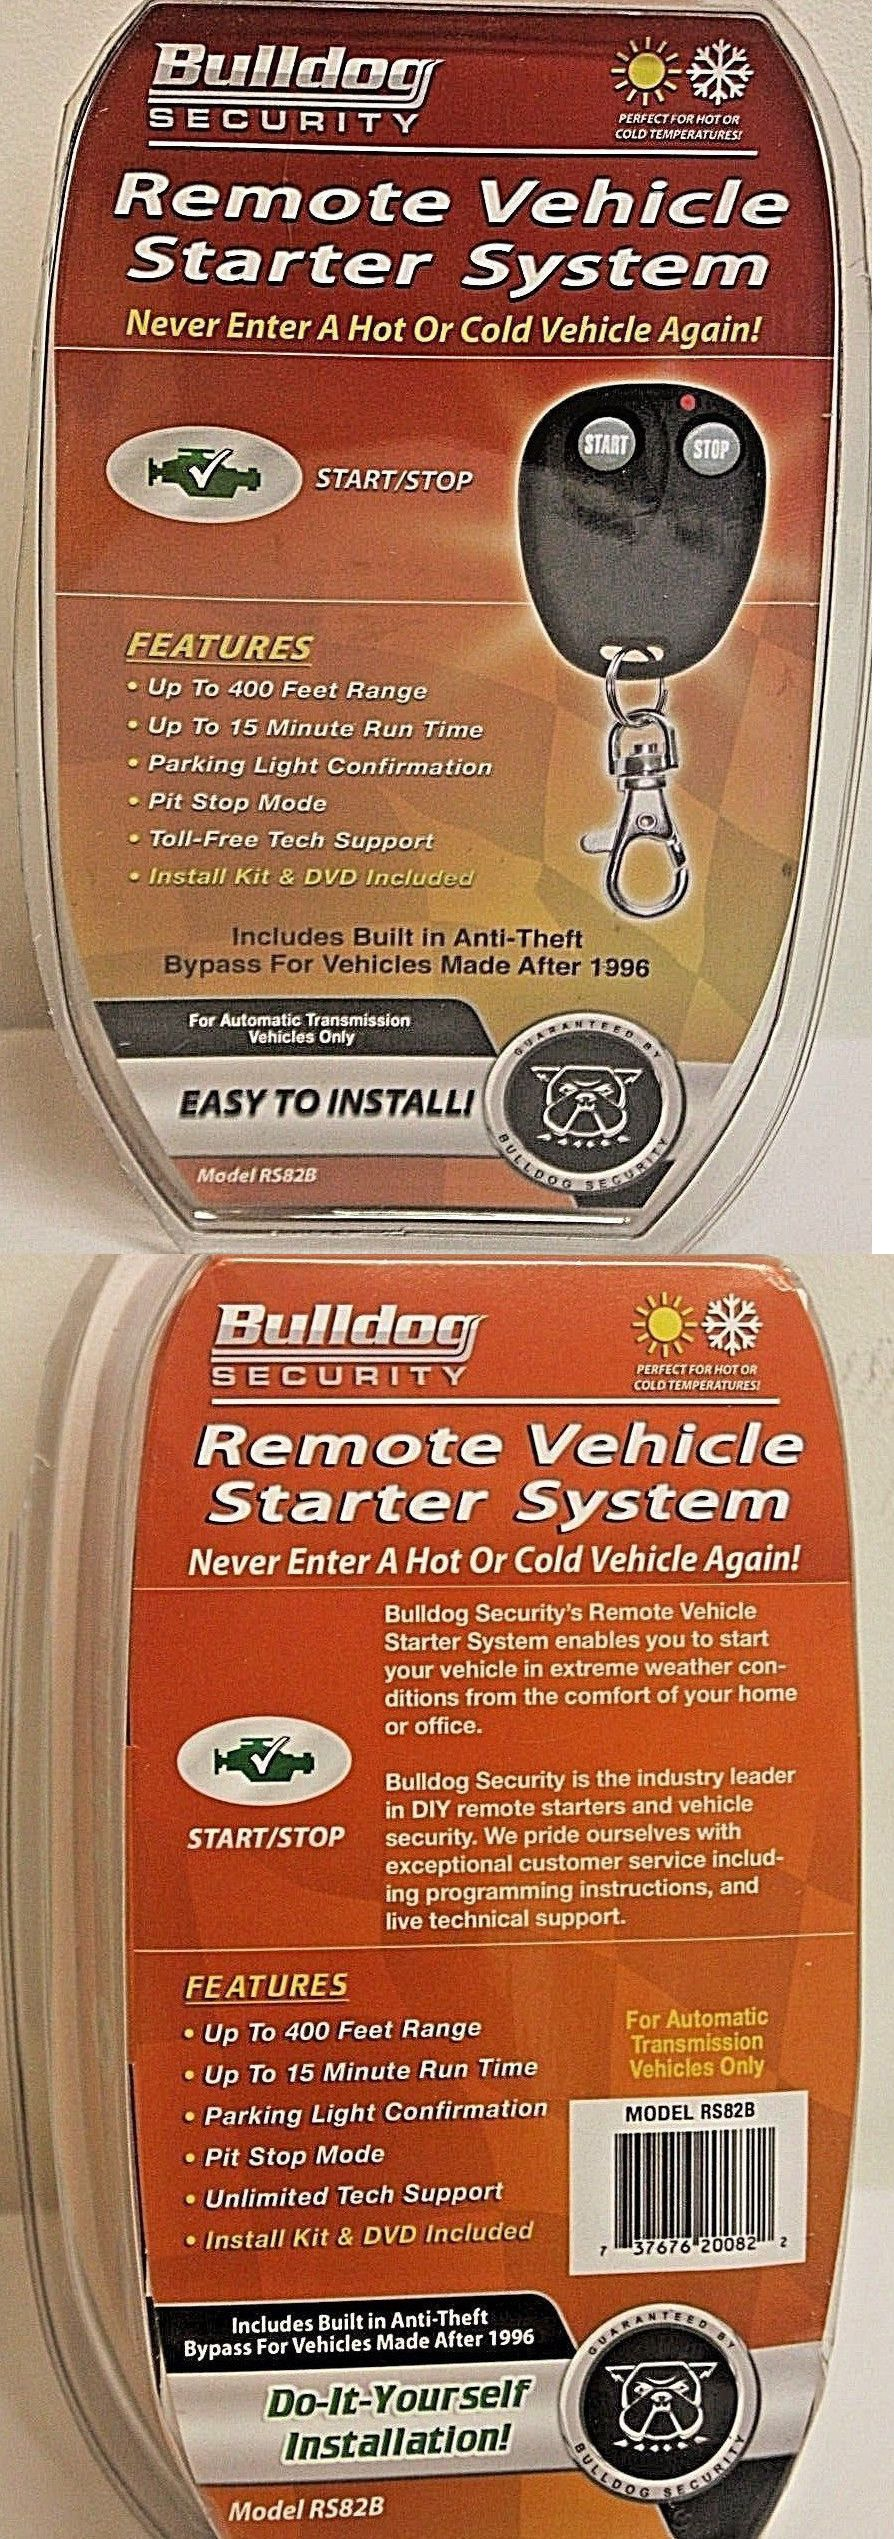 Comfortable Bulldogsecurity.com Wiring Tall Two Humbuckers 5 Way Switch Rectangular 3 Coil Pickup Bulldog Alarm System Young How To Install A Remote Car Starter Video BlackTele 3 Way Switch Bulldog Security Remote Vehicle Starter System   Dolgular